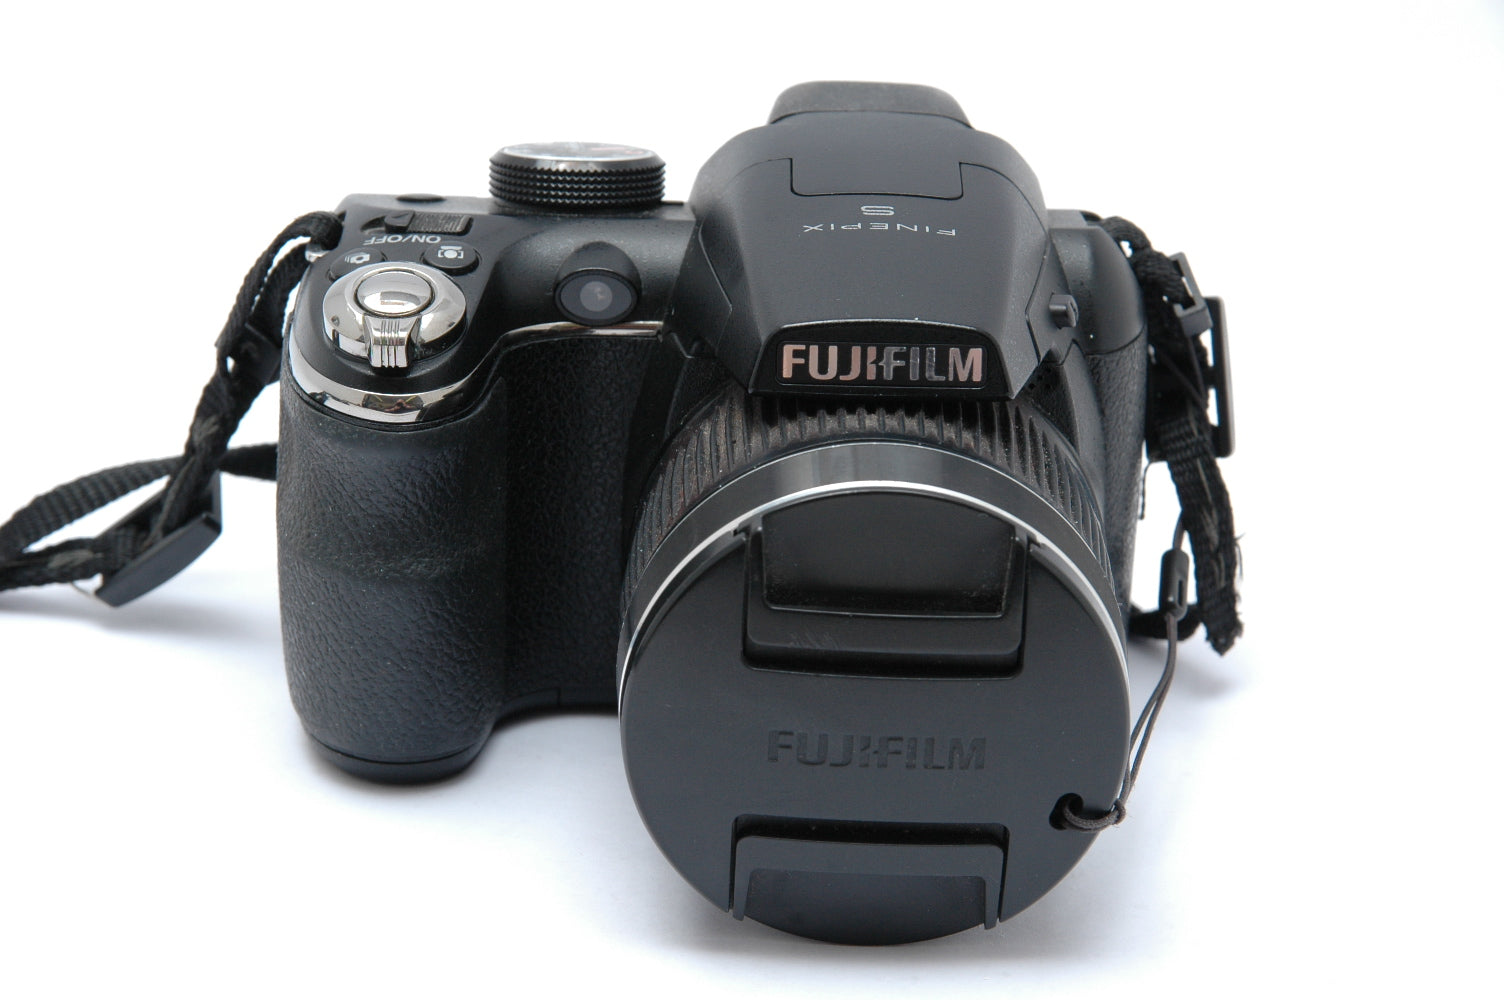 Used Fujifilm Finepix S4000 Digital Bridge Camera ...